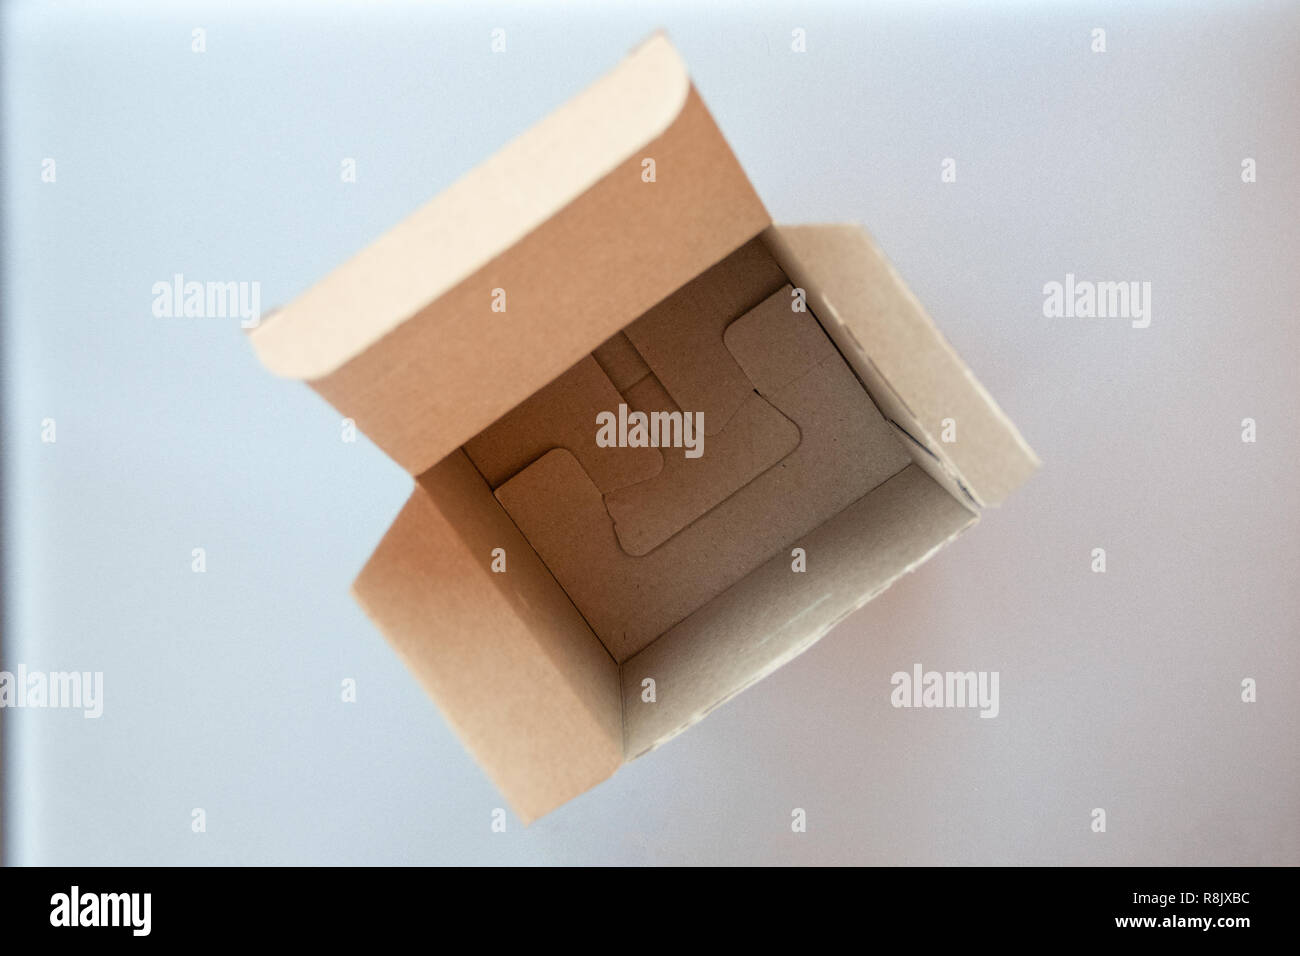 Opened big square cardboard craft gift box on the silver gray metal background - Stock Image